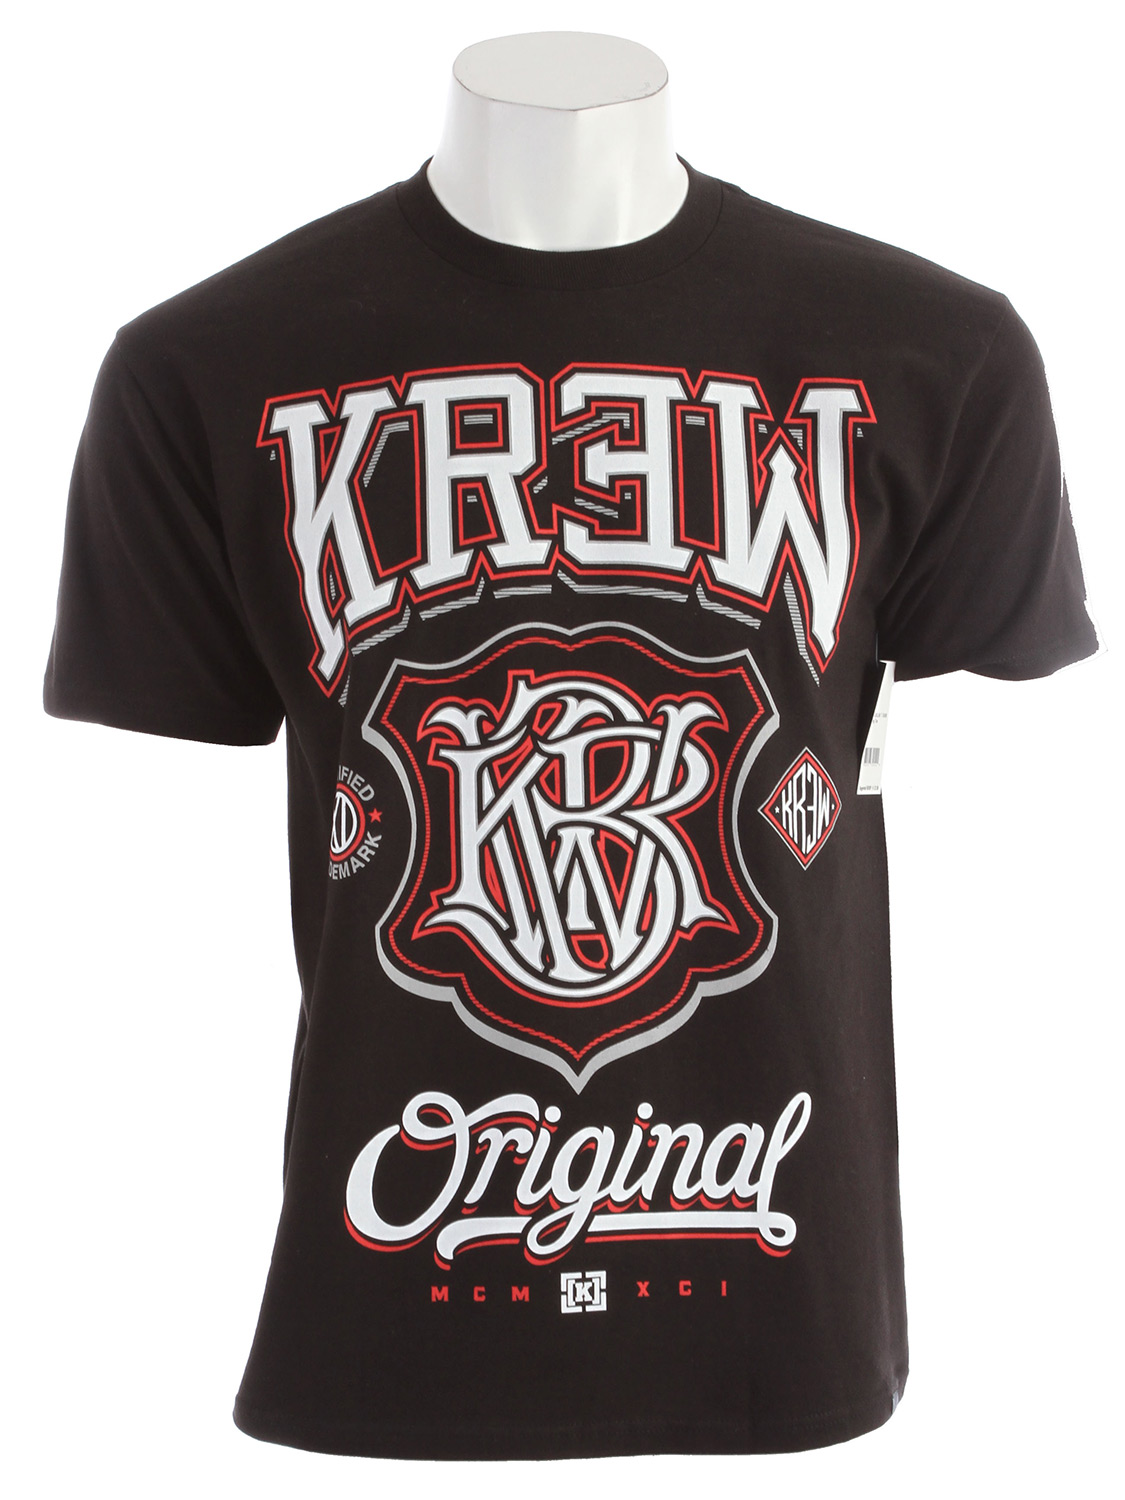 Let's be honest, you're a champ and we all know it! Why not show it off with the KR3W Champ 2 Regular T-Shirt Key Features of the KR3W Champ 2 Regular T-Shirt: 100% cotton 30 singles regular - $13.95